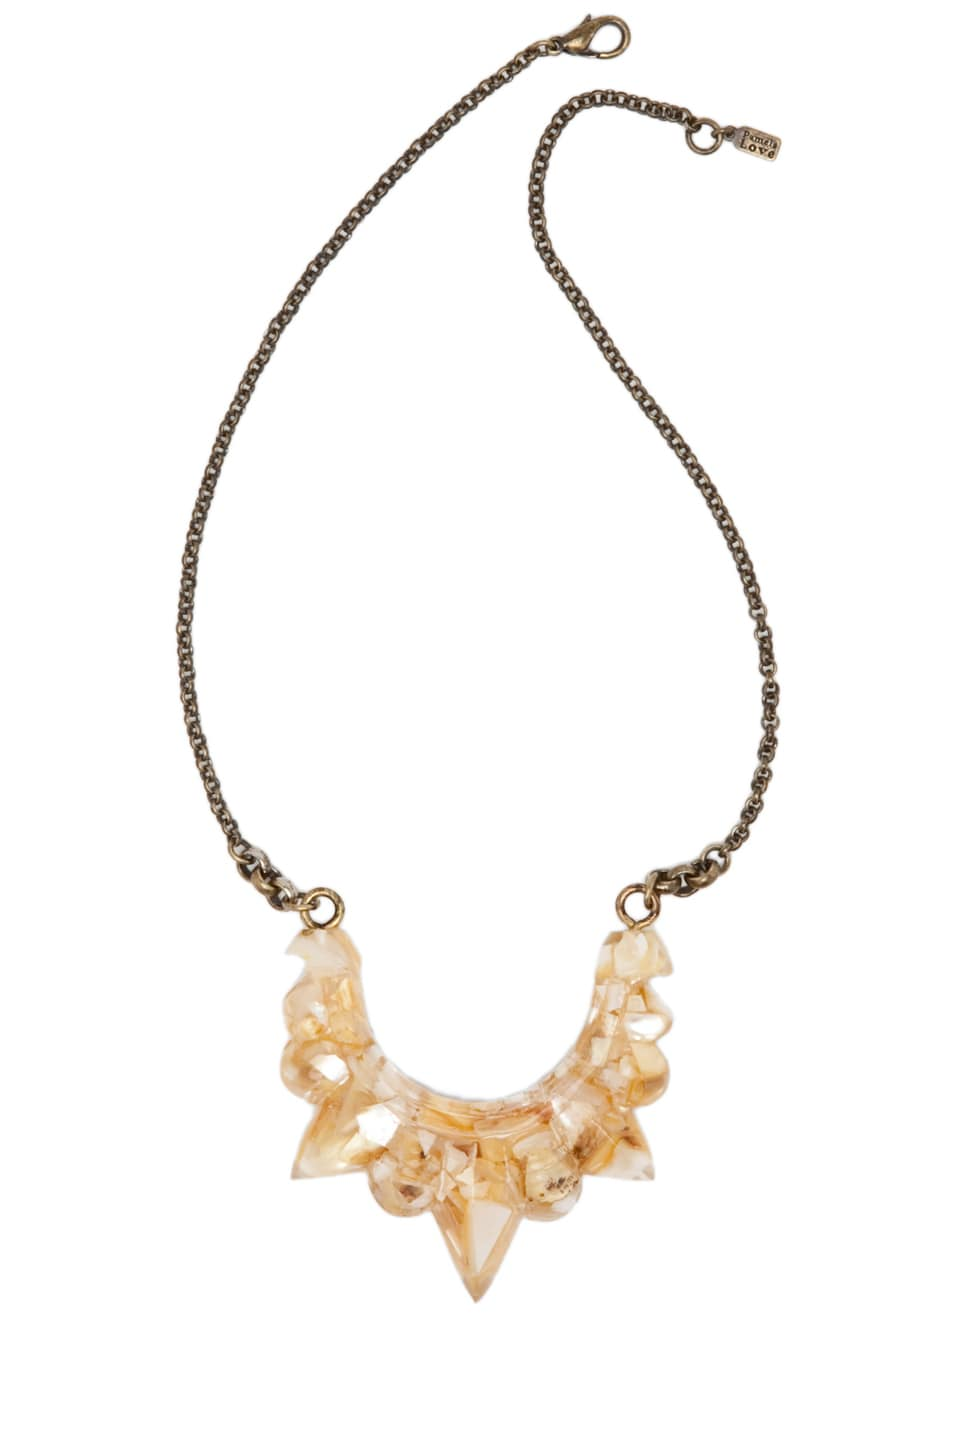 Image 1 of Pamela Love Resin Tribal Spike Necklace in Crushed Shell Resin